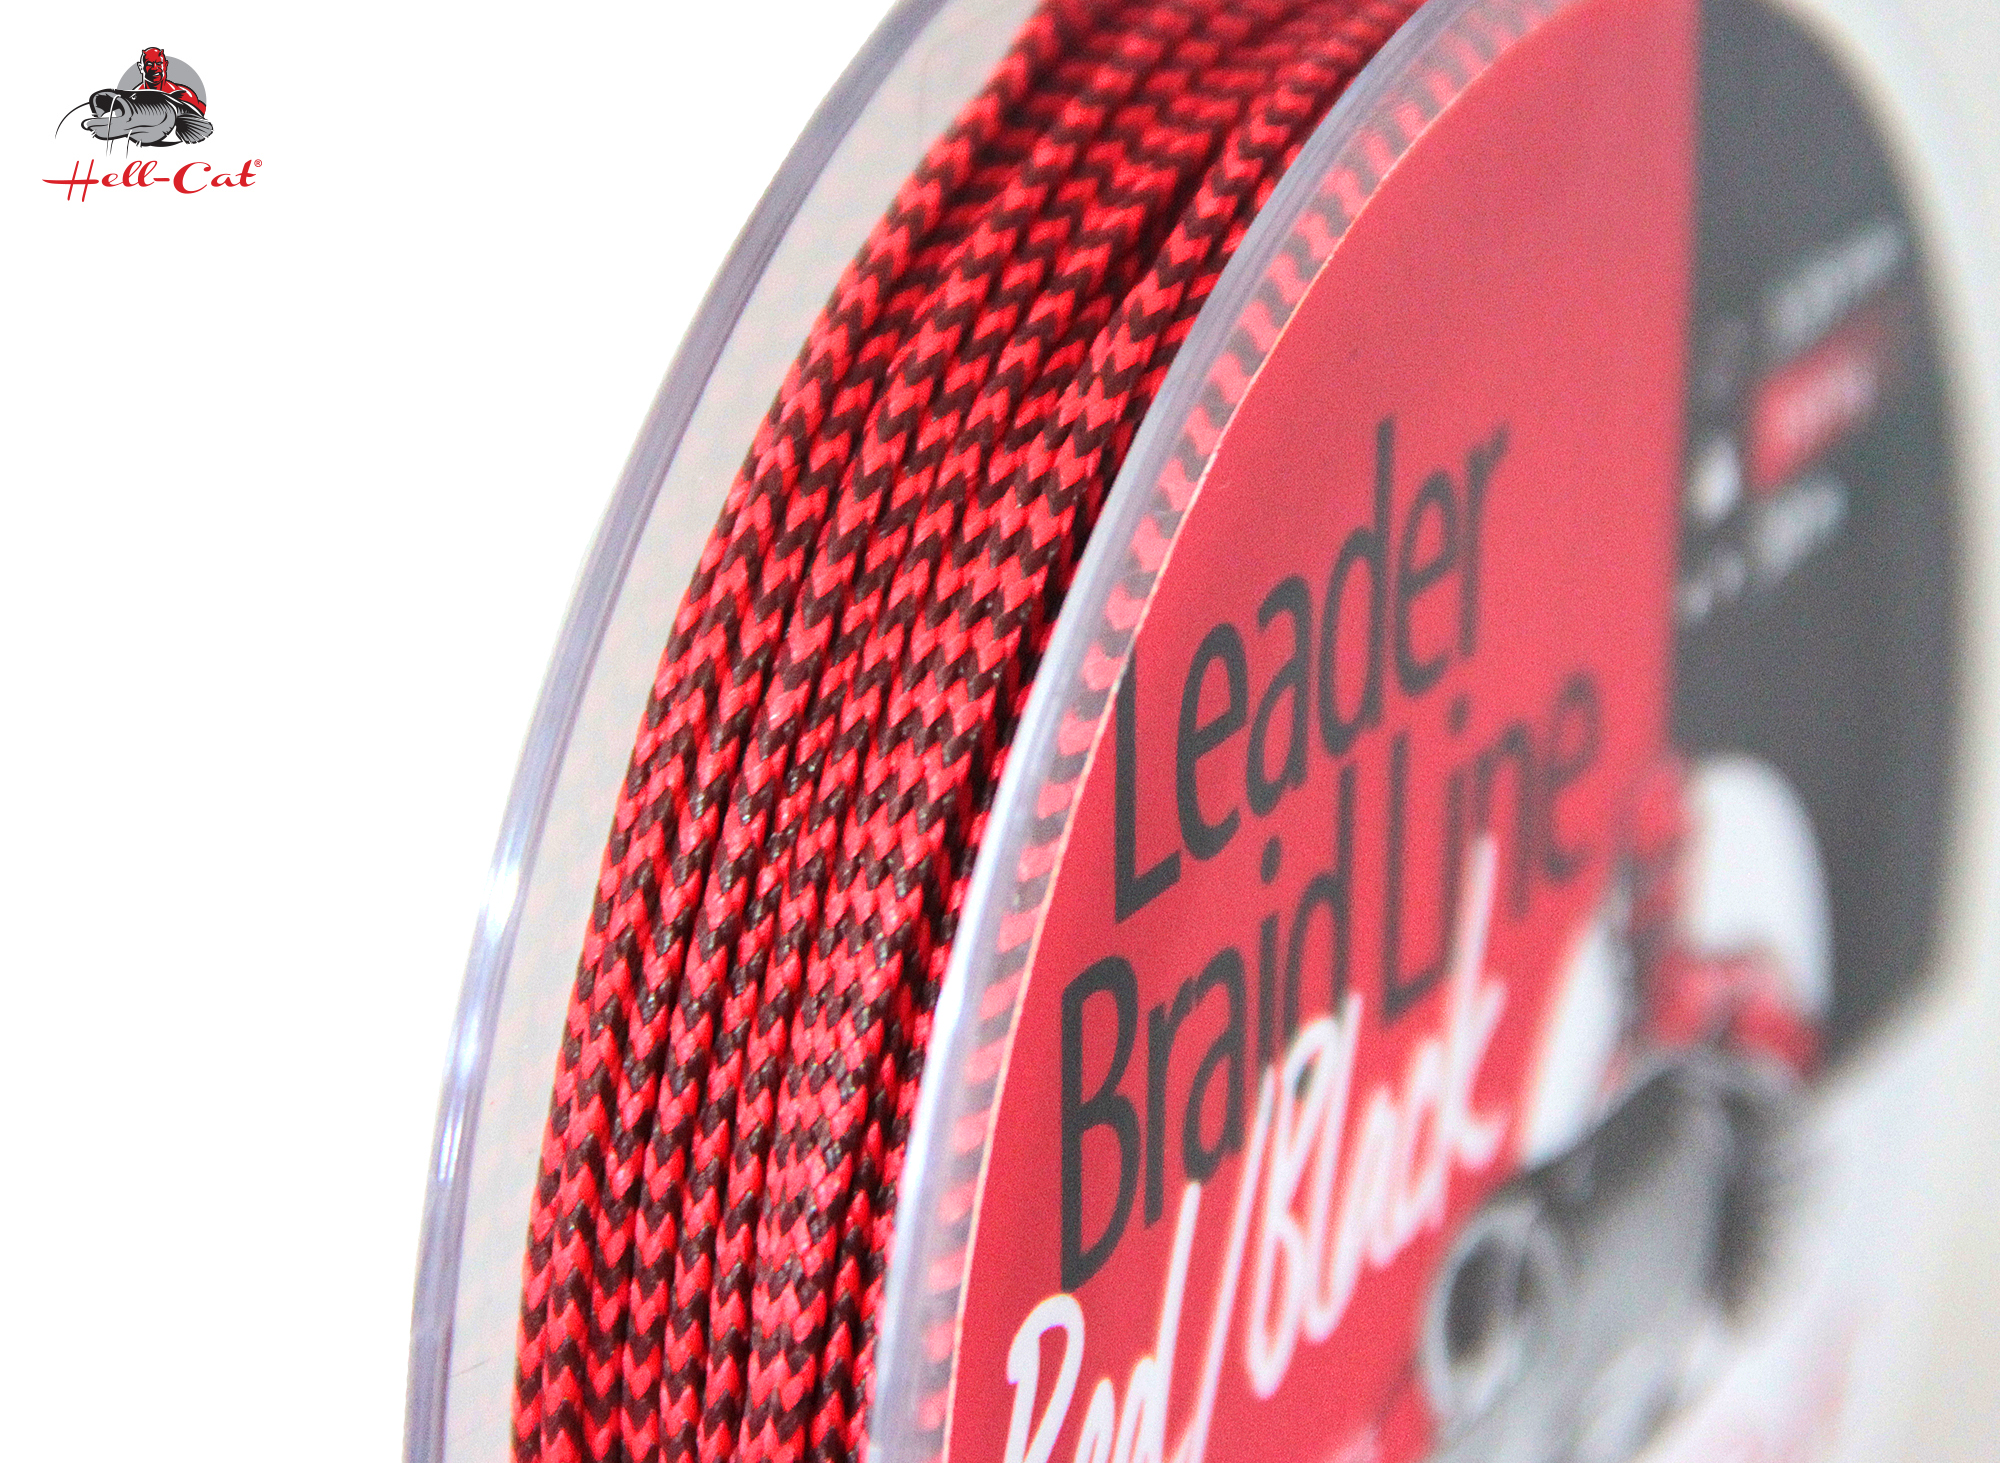 Hell-Cat - Návazcová šňůra Leader Braid Line Red/Black 1,55mm - 20m - 150kg